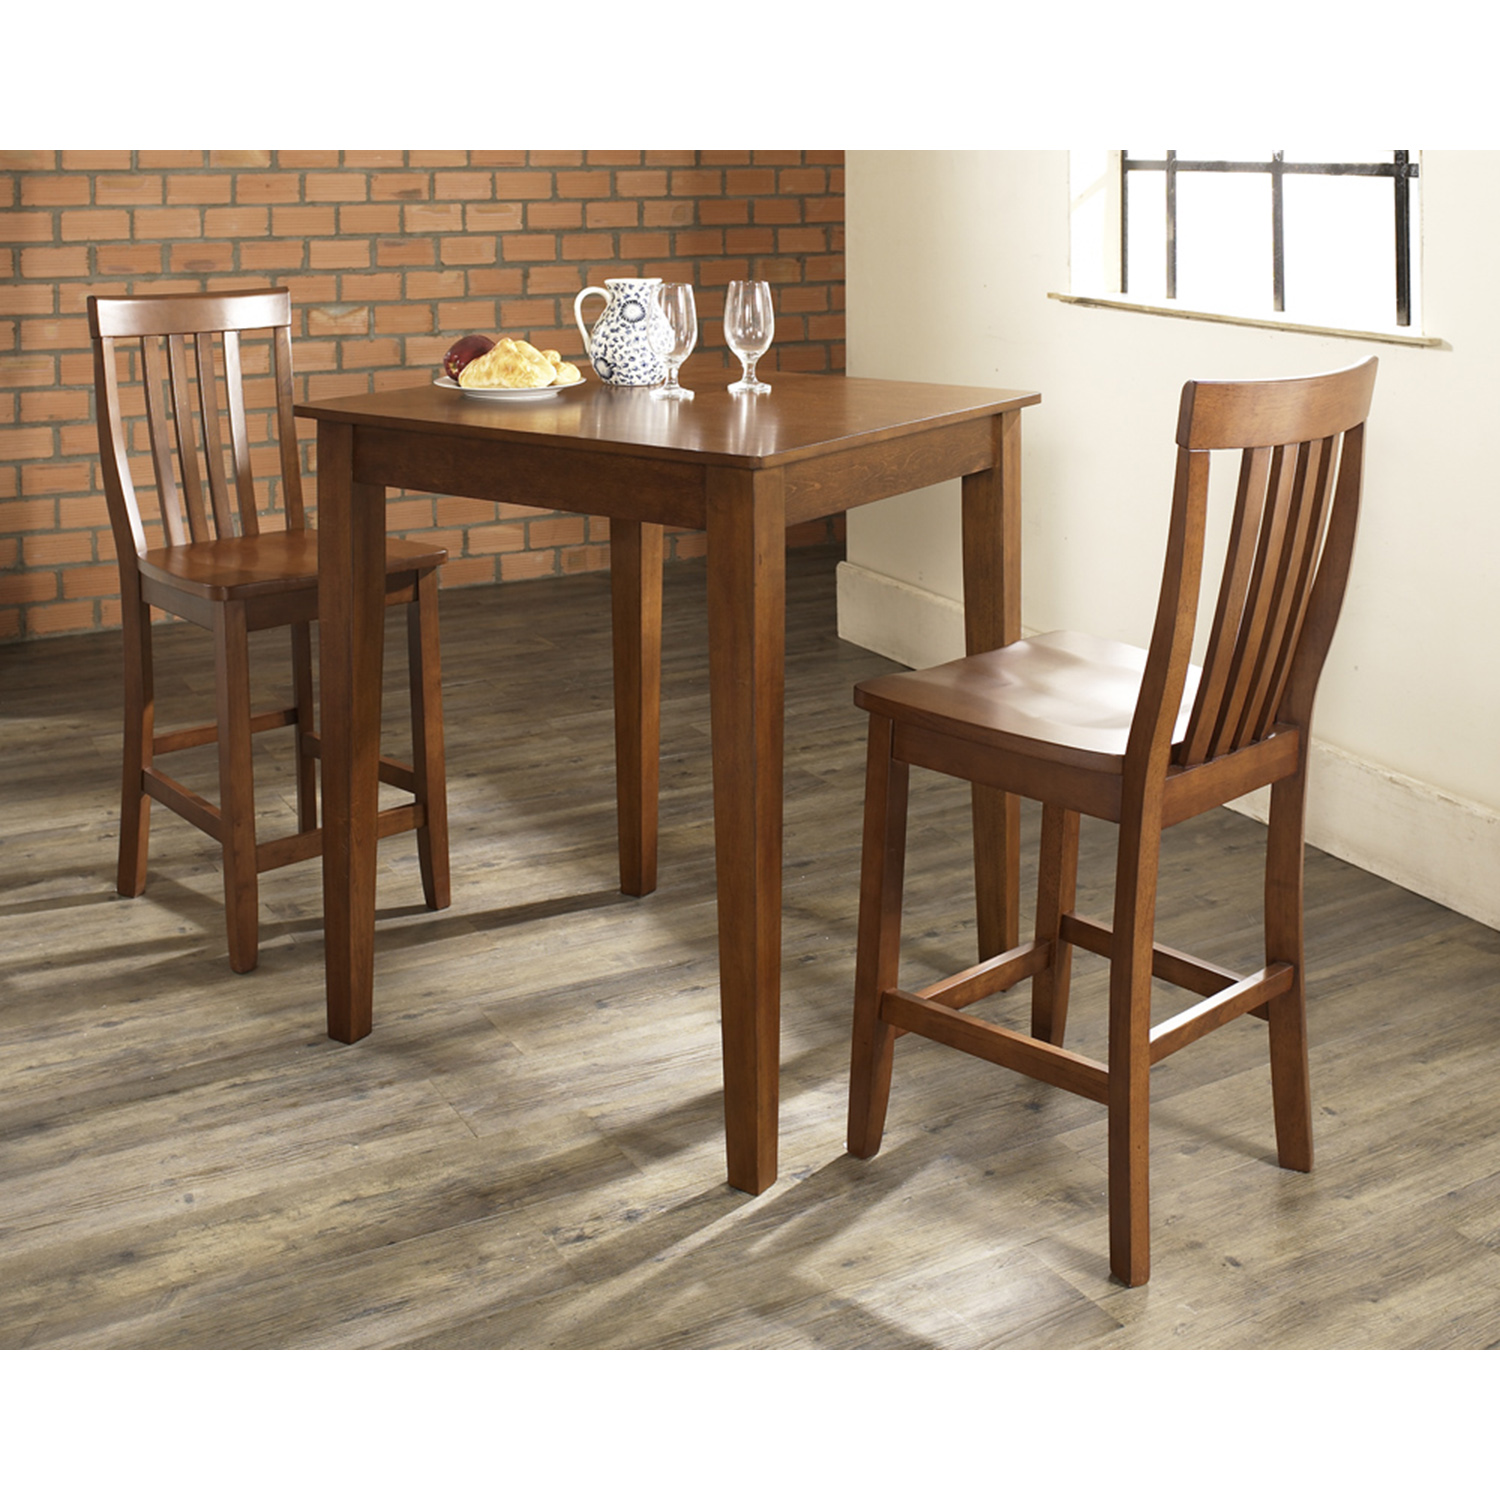 3-Piece Pub Dining Set - Tapered Leg, School House Stools, Cherry - CROS-KD320007CH